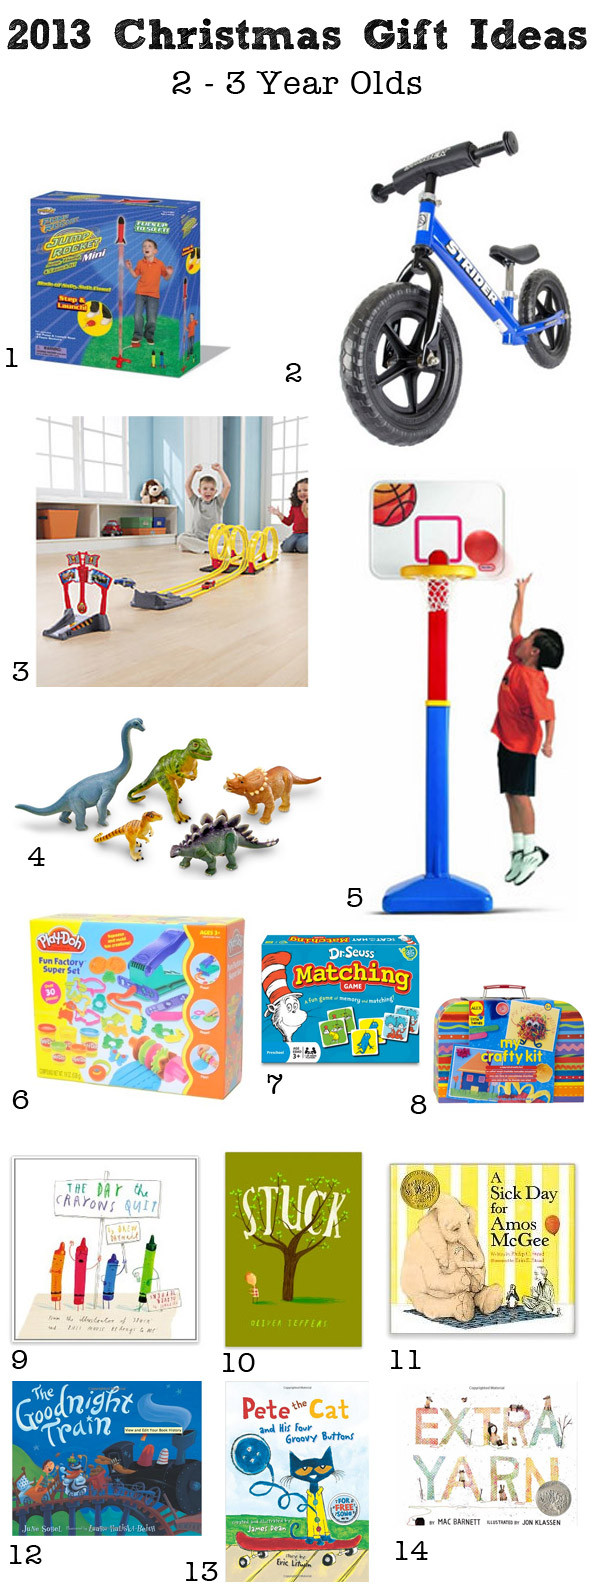 Best ideas about 3 Year Old Christmas Gift Ideas . Save or Pin Christmas Gifts Ideas 2 3 Year Olds Now.